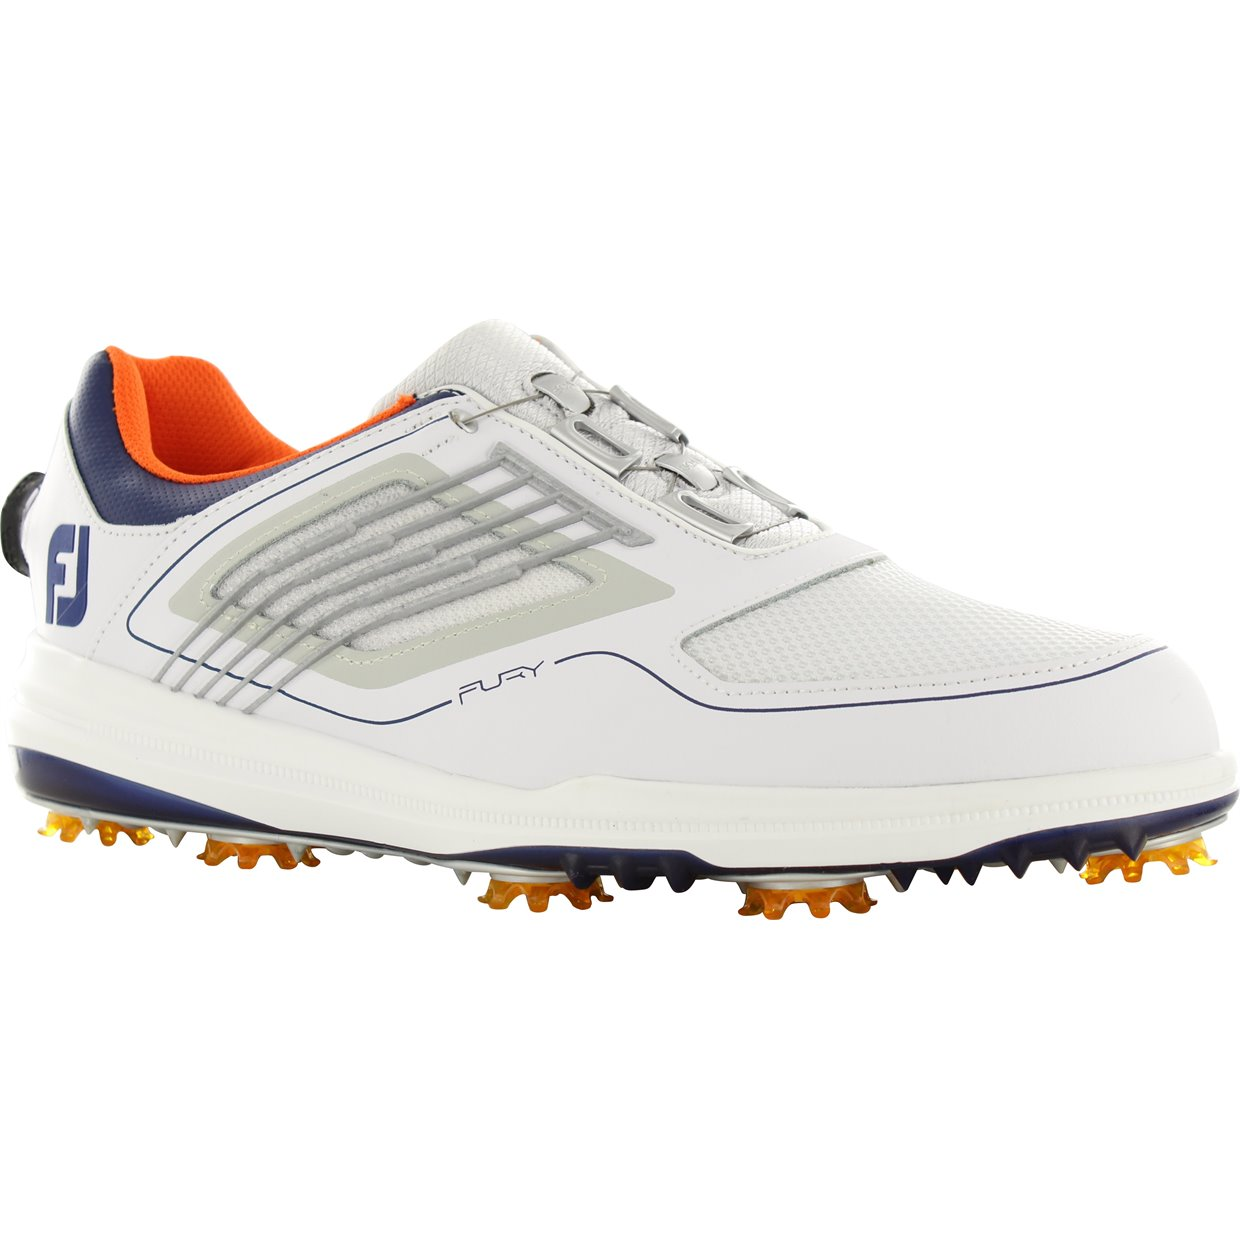 Footjoy Fj Fury Boa Previous Season Shoe Style Golf Shoes At Globalgolf Com